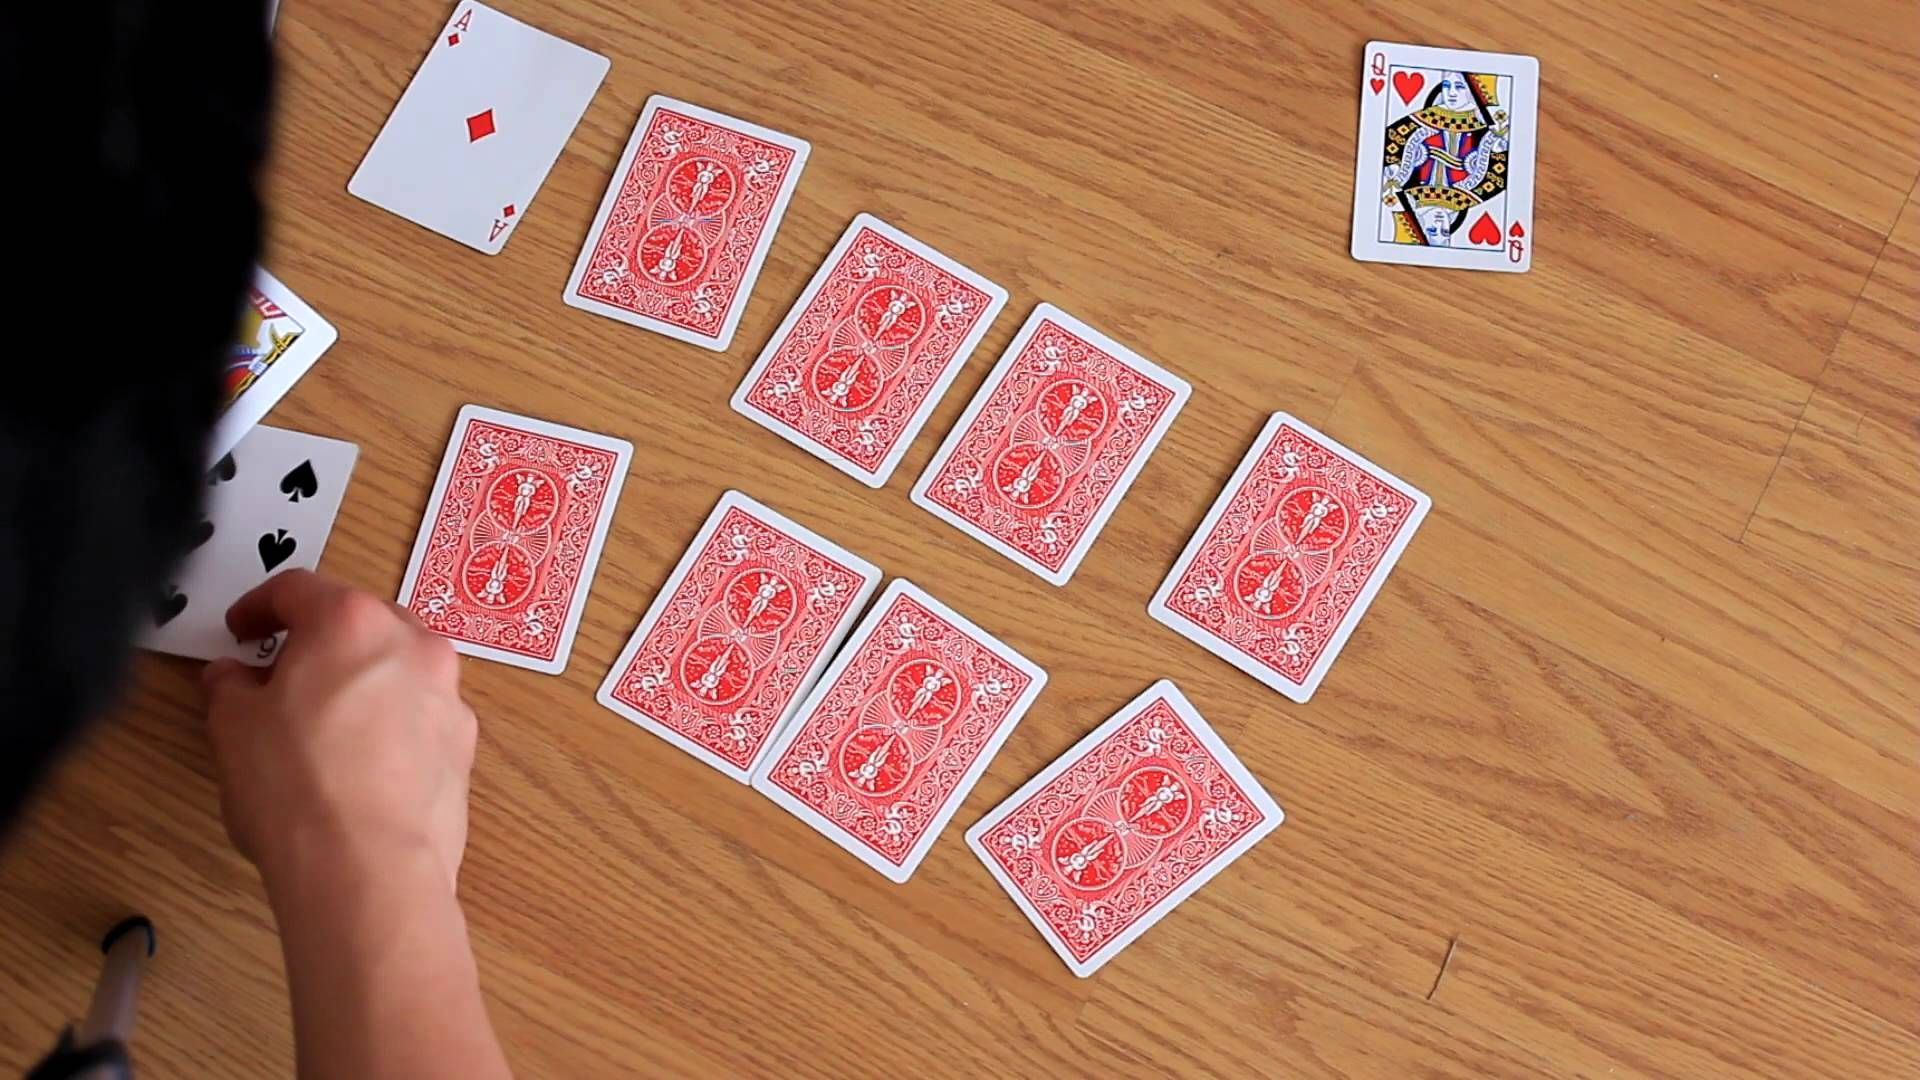 Bored Games How To Play Garbage Solo Fun Card Games Card Games Card Games For Kids